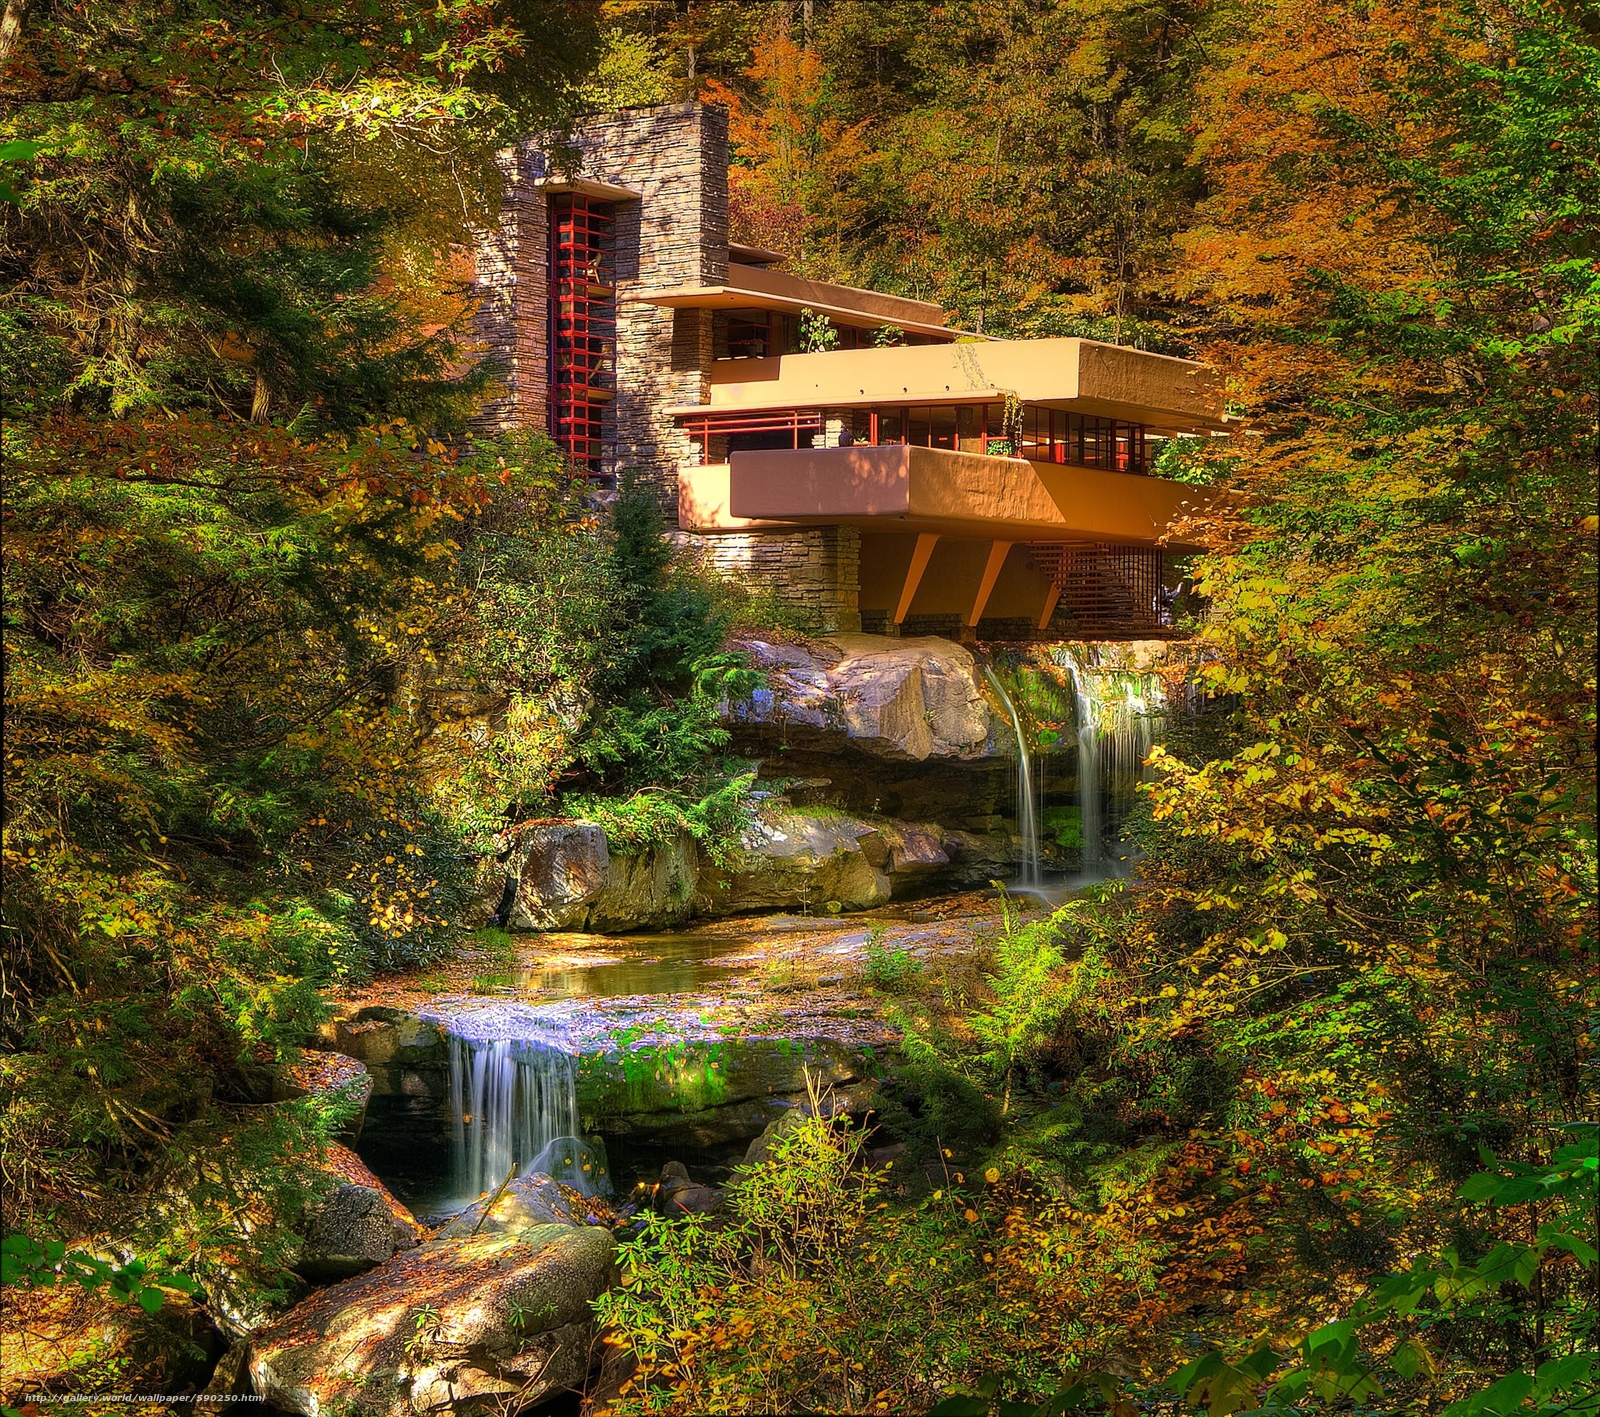 Download wallpaper fallingwater pennsylvania autumn for House built on waterfall